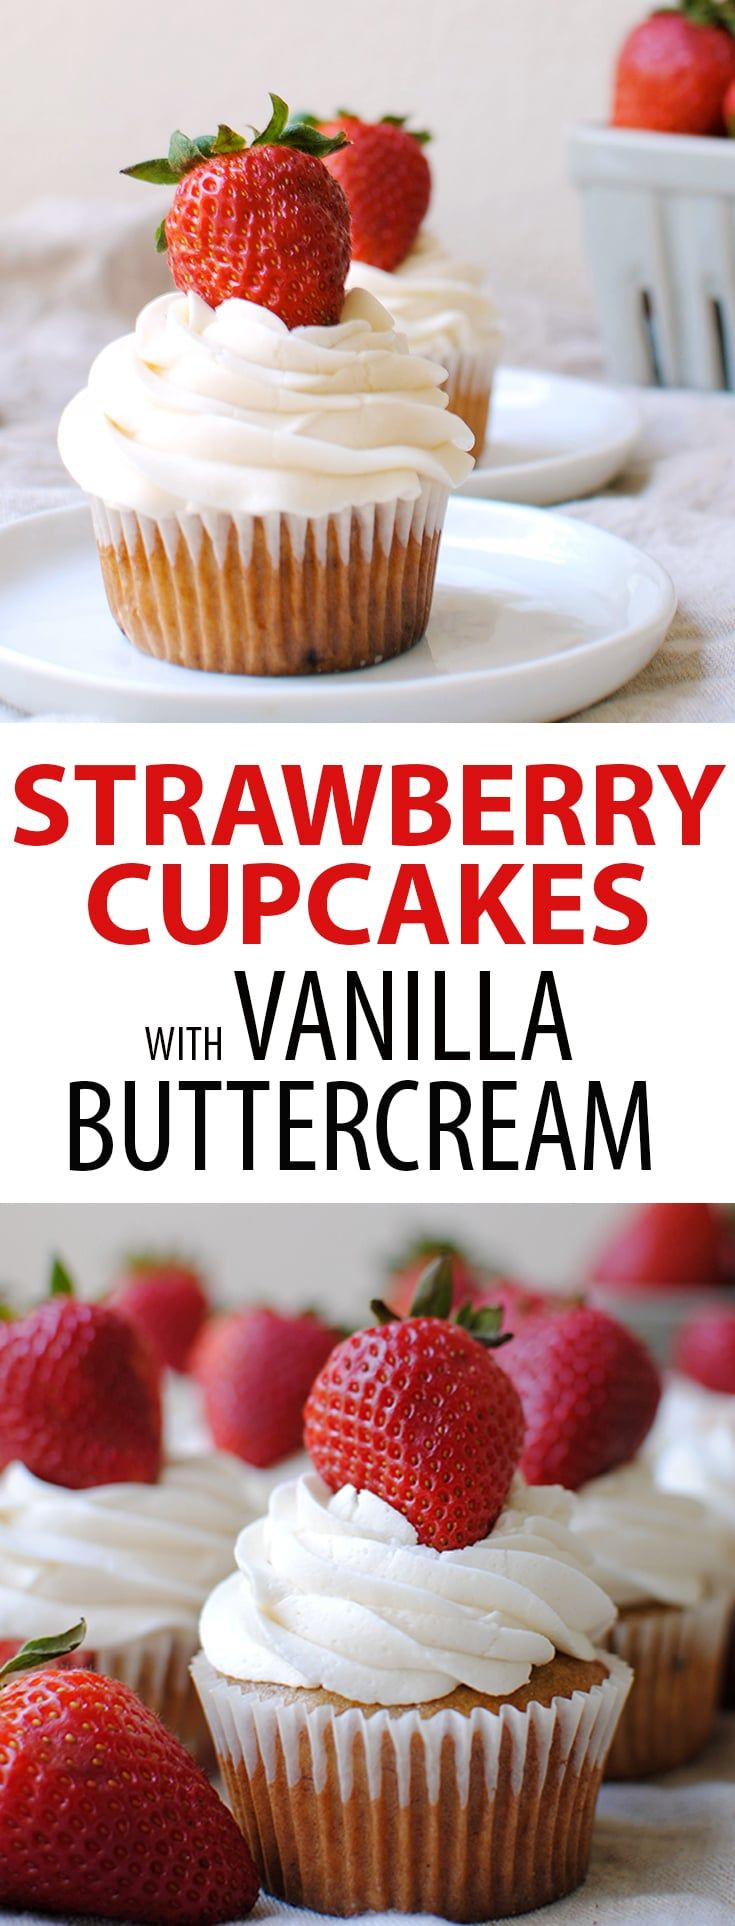 Fresh, juicy strawberries and a luscious vanilla buttercream frosting combine to make this easy and delicious recipe for strawberry cupcakes! #Valentines_Day #Mothers_Day #dessert